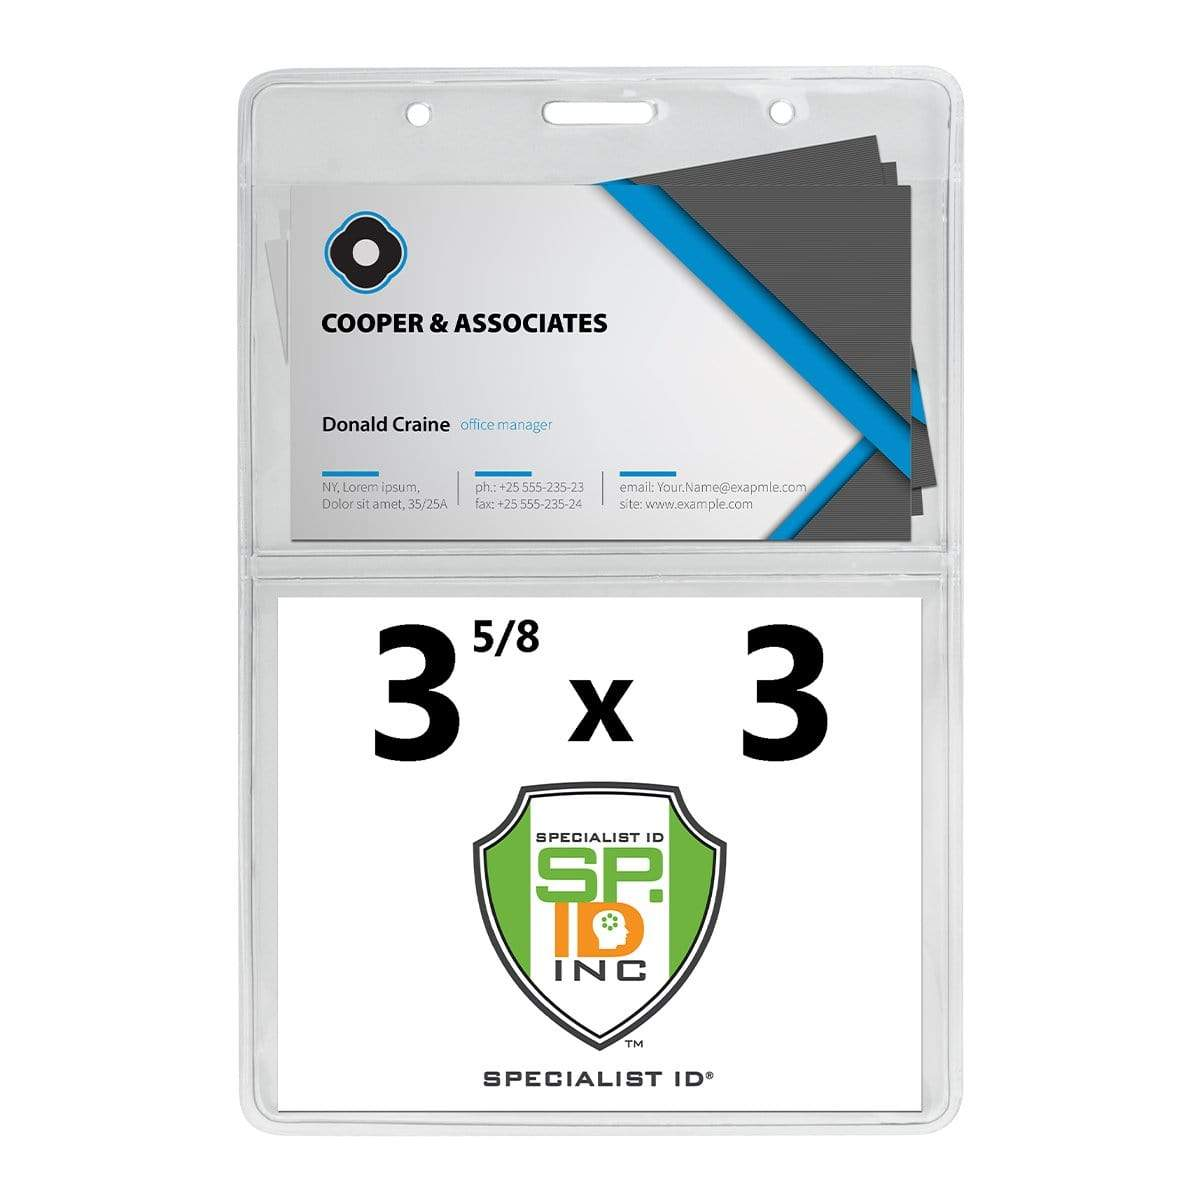 3 5/8 x 5 Special Event Badge & Credential Badge Holder with Business Card Pocket on Back (P/N 306-2P46)